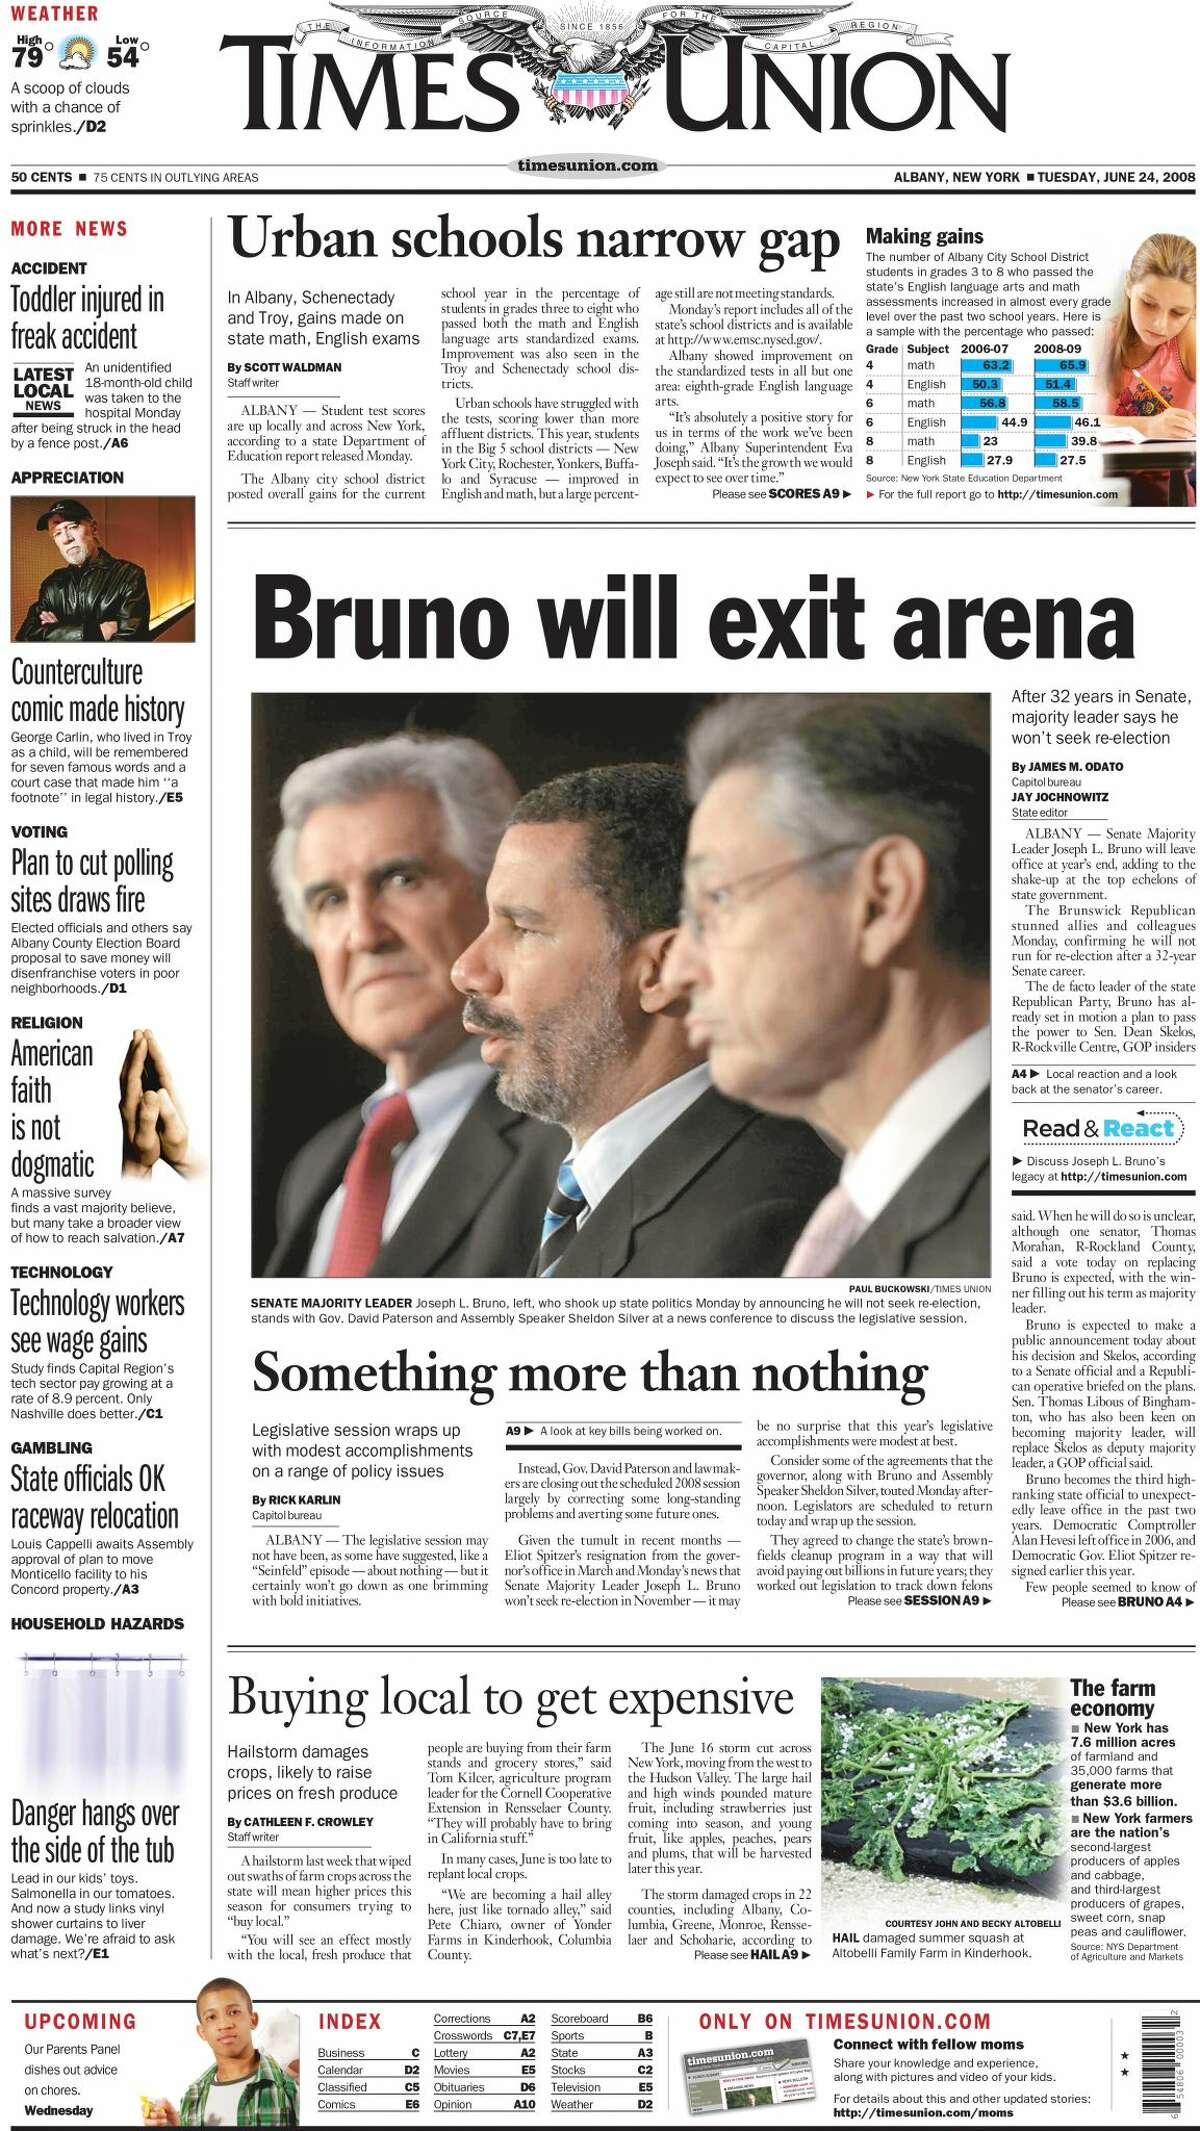 June 24, 2008: With the legislative session wrapping up, Bruno announces that he'll be retiring at the end of the year. Sen. Dean Skelos of Long Island is tapped as his successor.